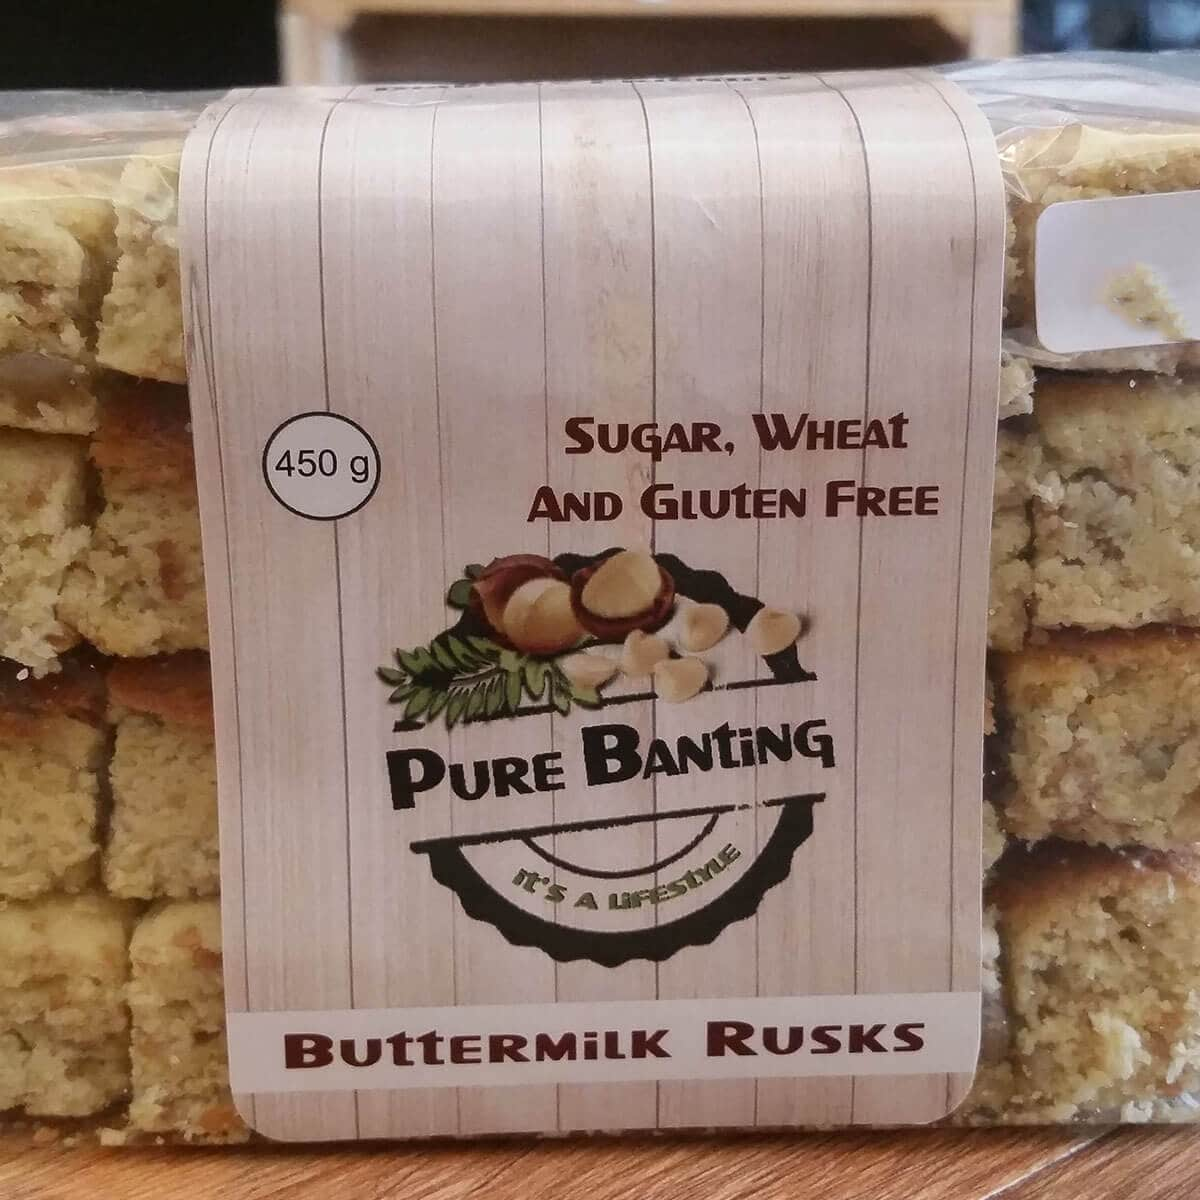 Pure Banting Butter Rusks (450g)